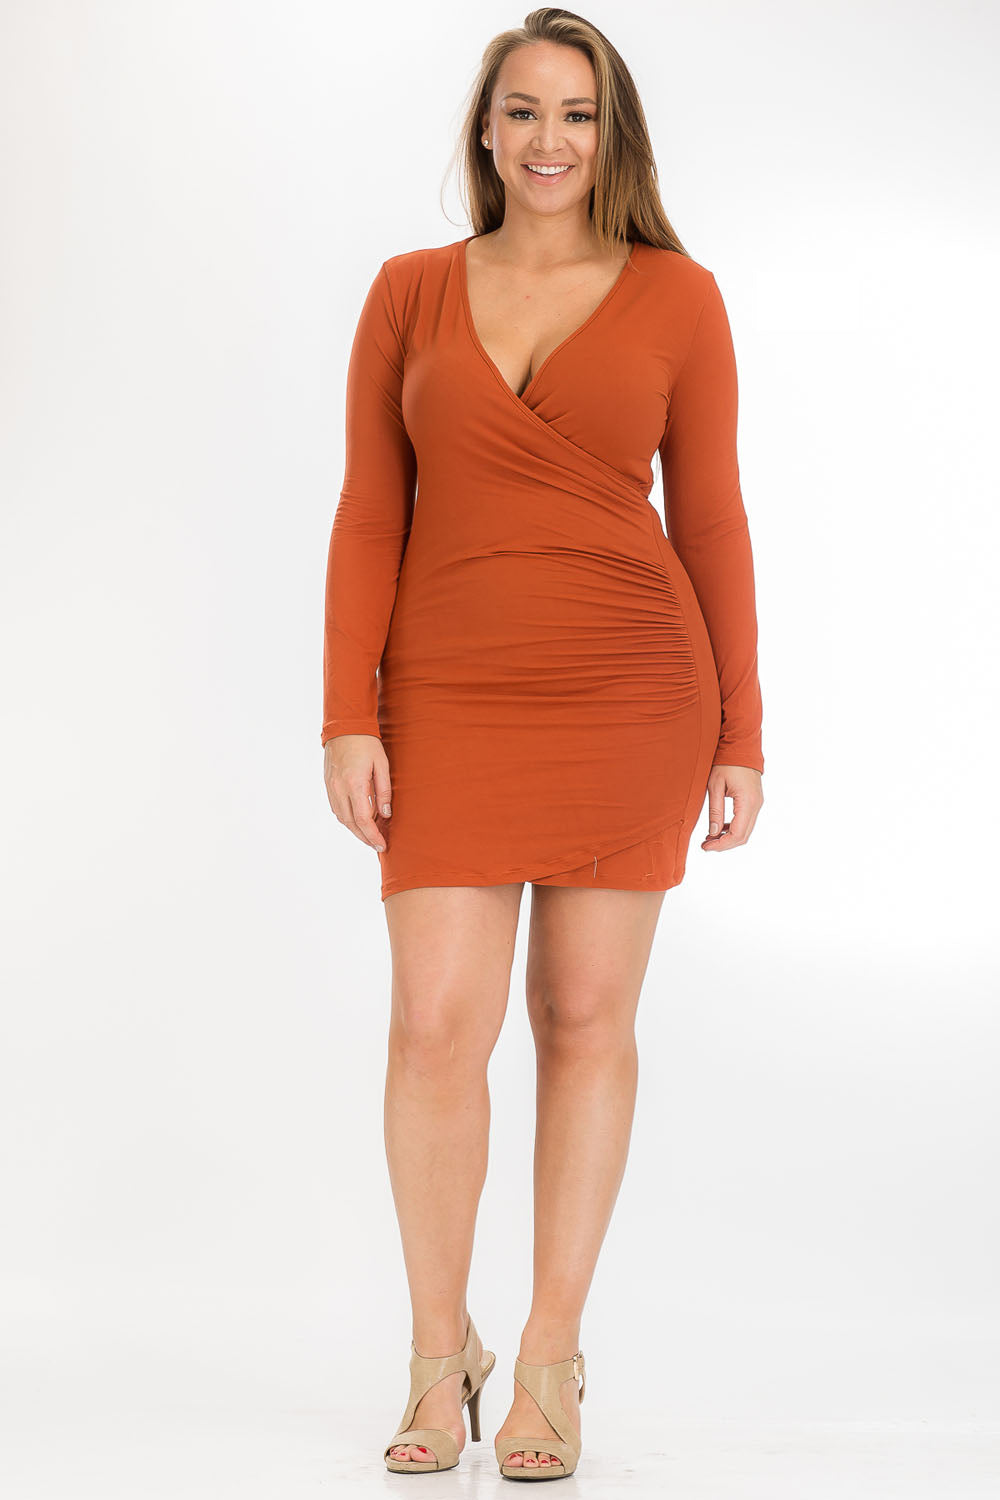 Dress - BD2172X (PLUS SIZE) - Capella Apparel